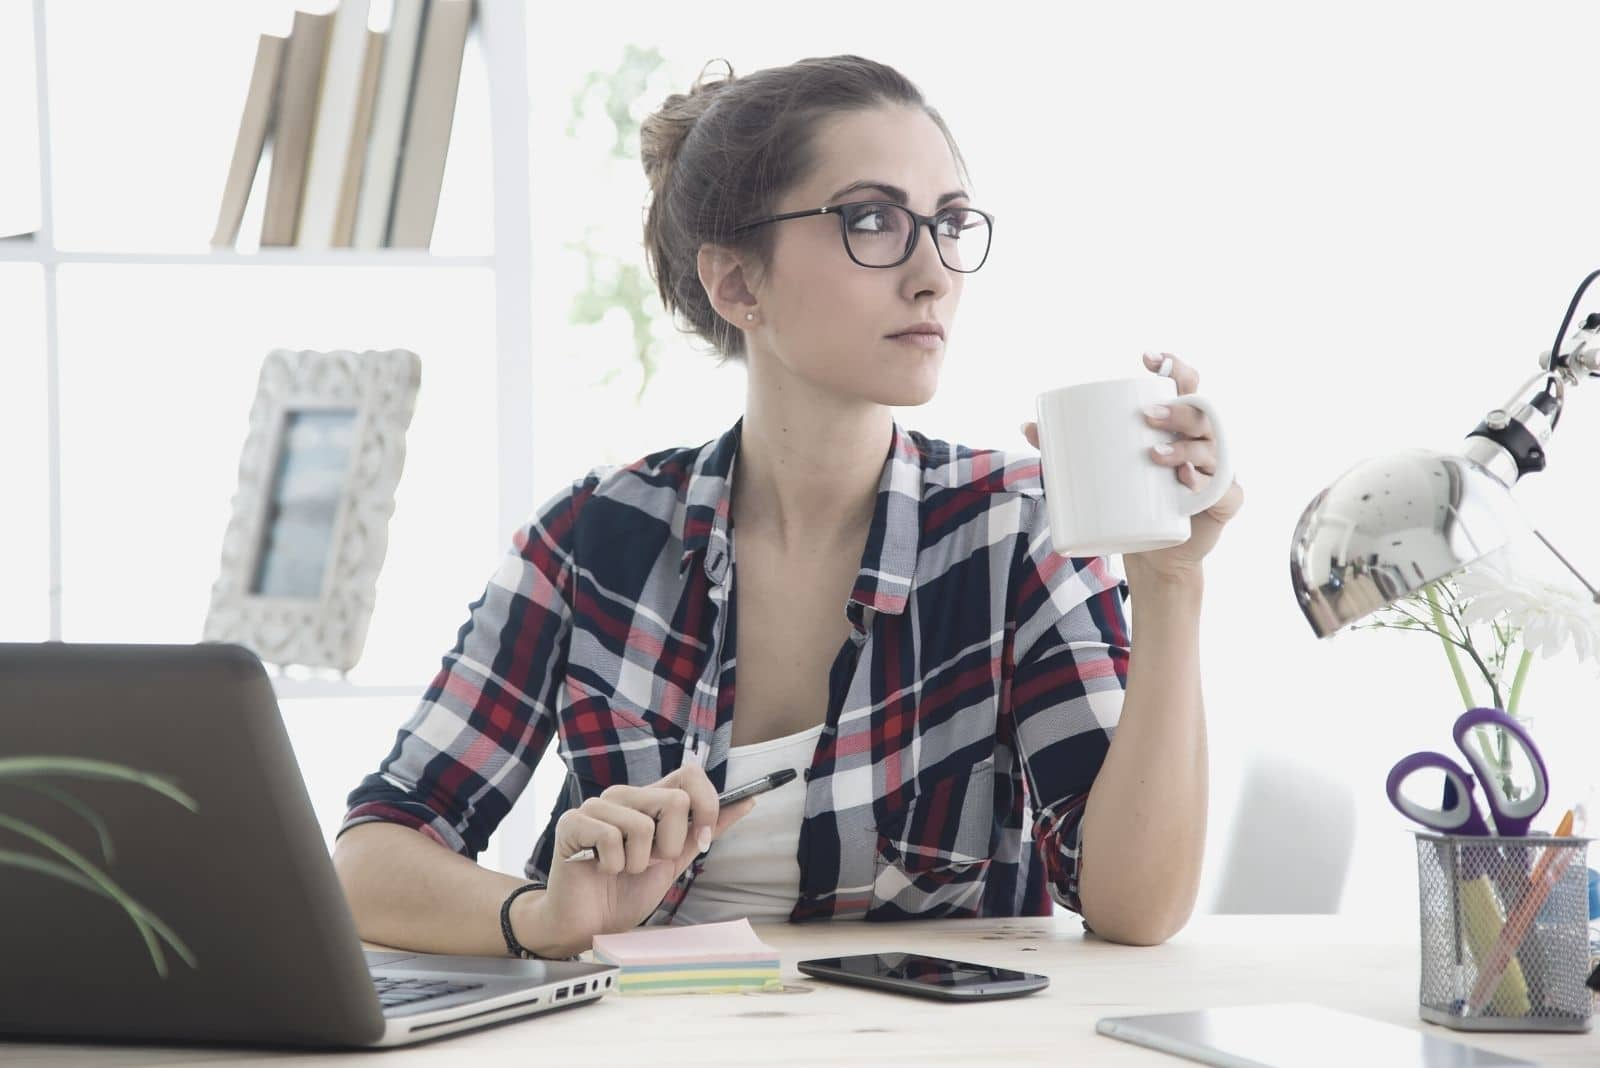 woman sitting in office thinking and looking away wearing eyeglasses and drinking from a mug